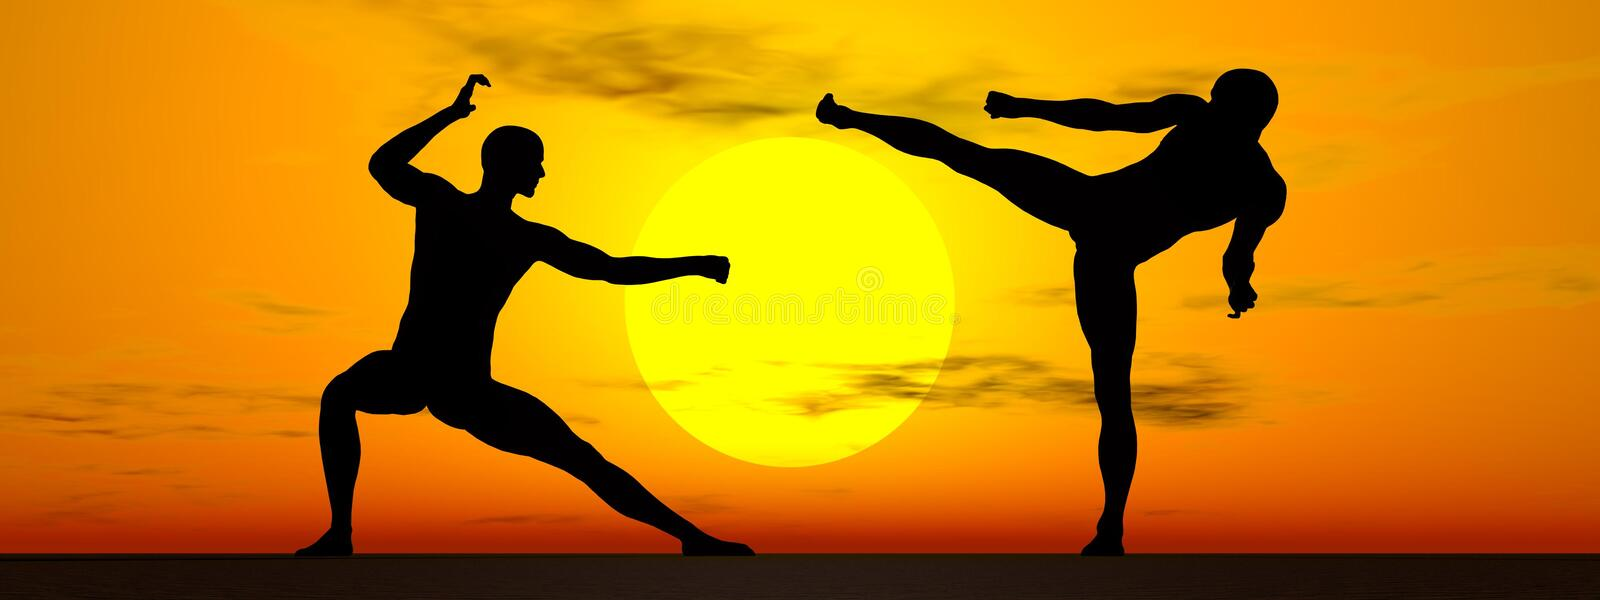 Kung-fu by sunset - 3D render vector illustration